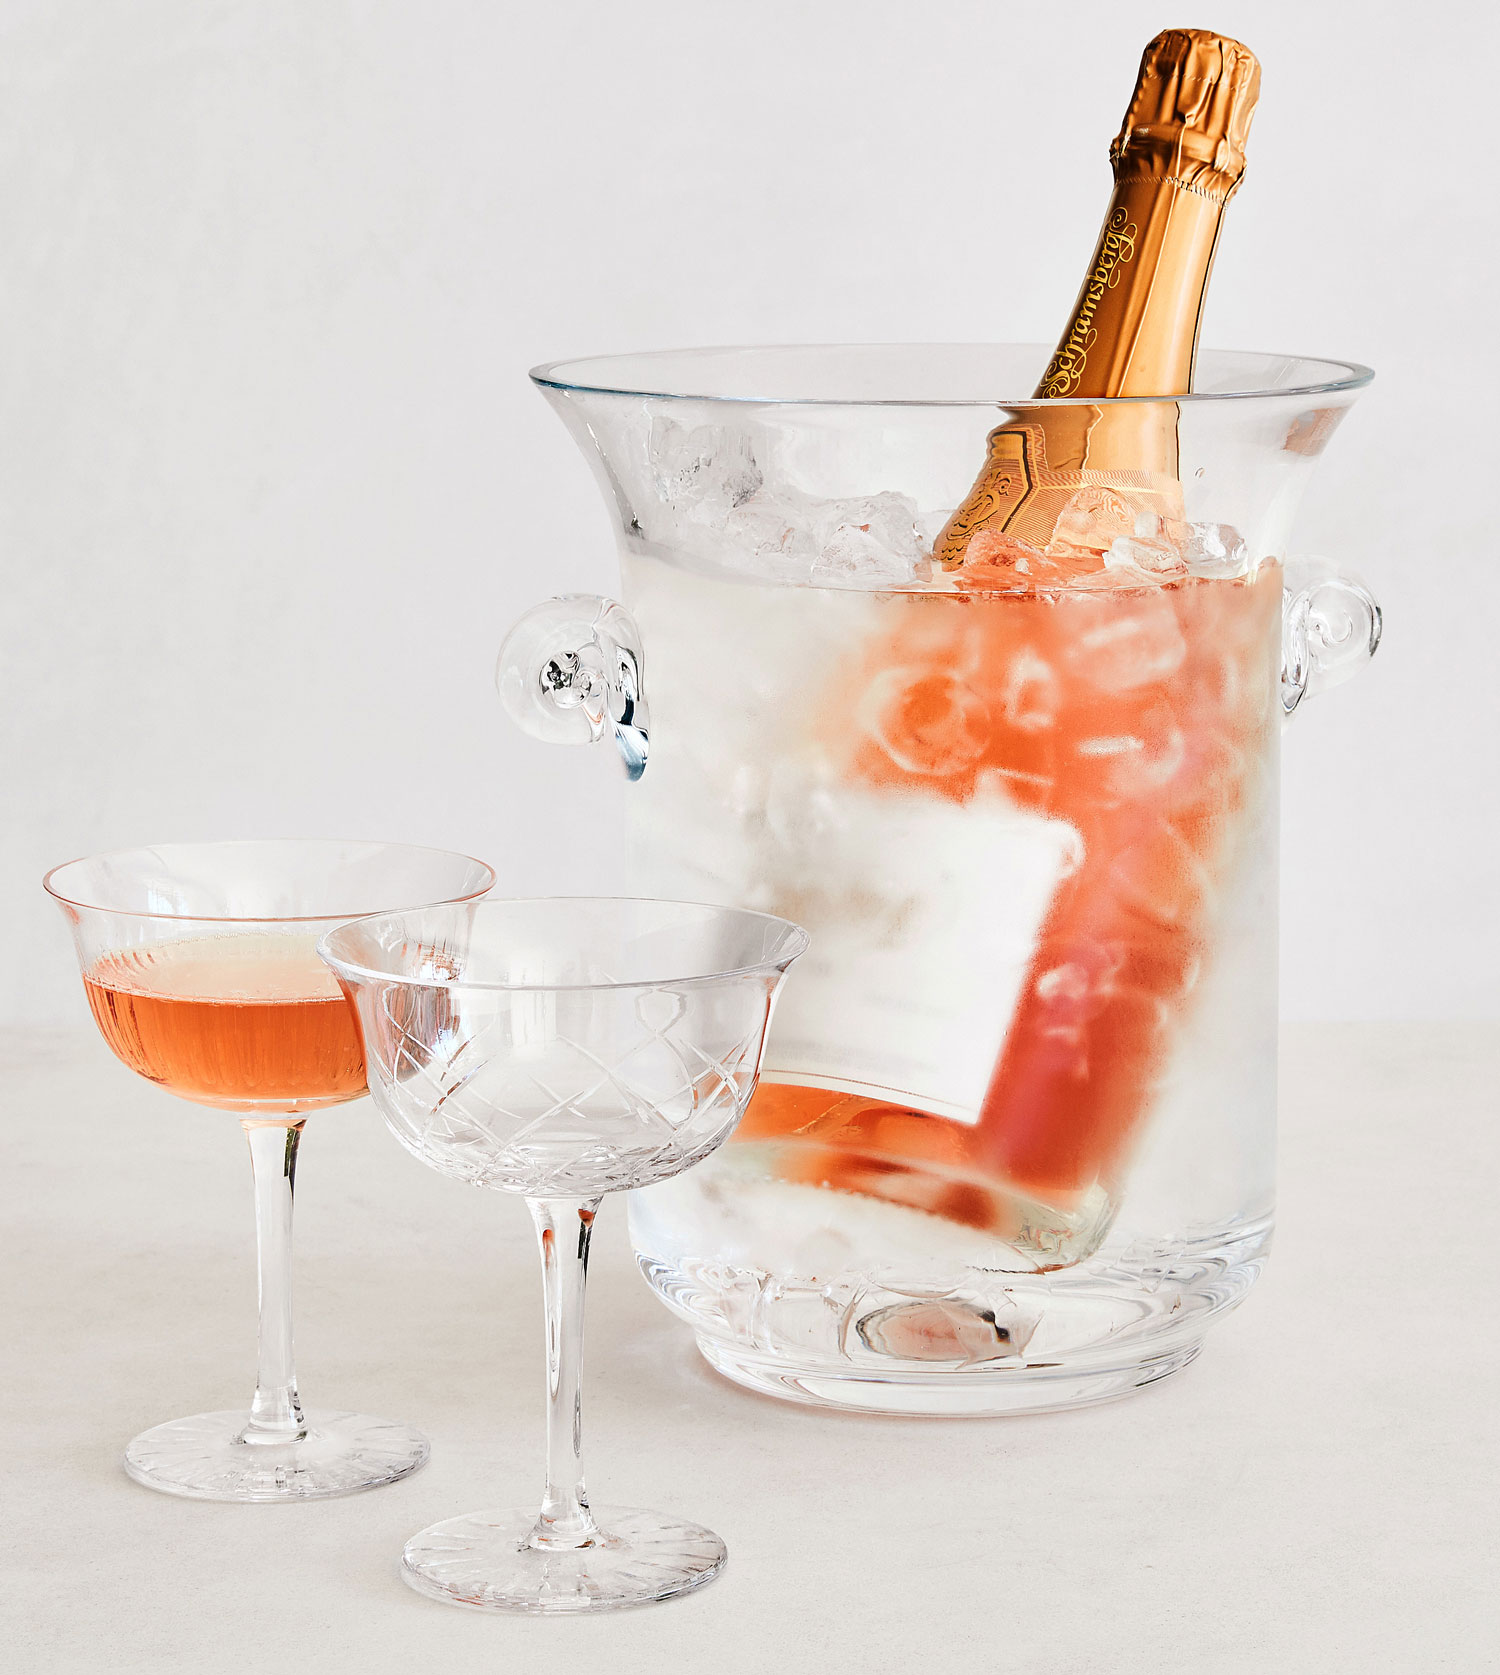 Monique Lhuillier for Pottery Barn ice bucket and champagne glasses coupe